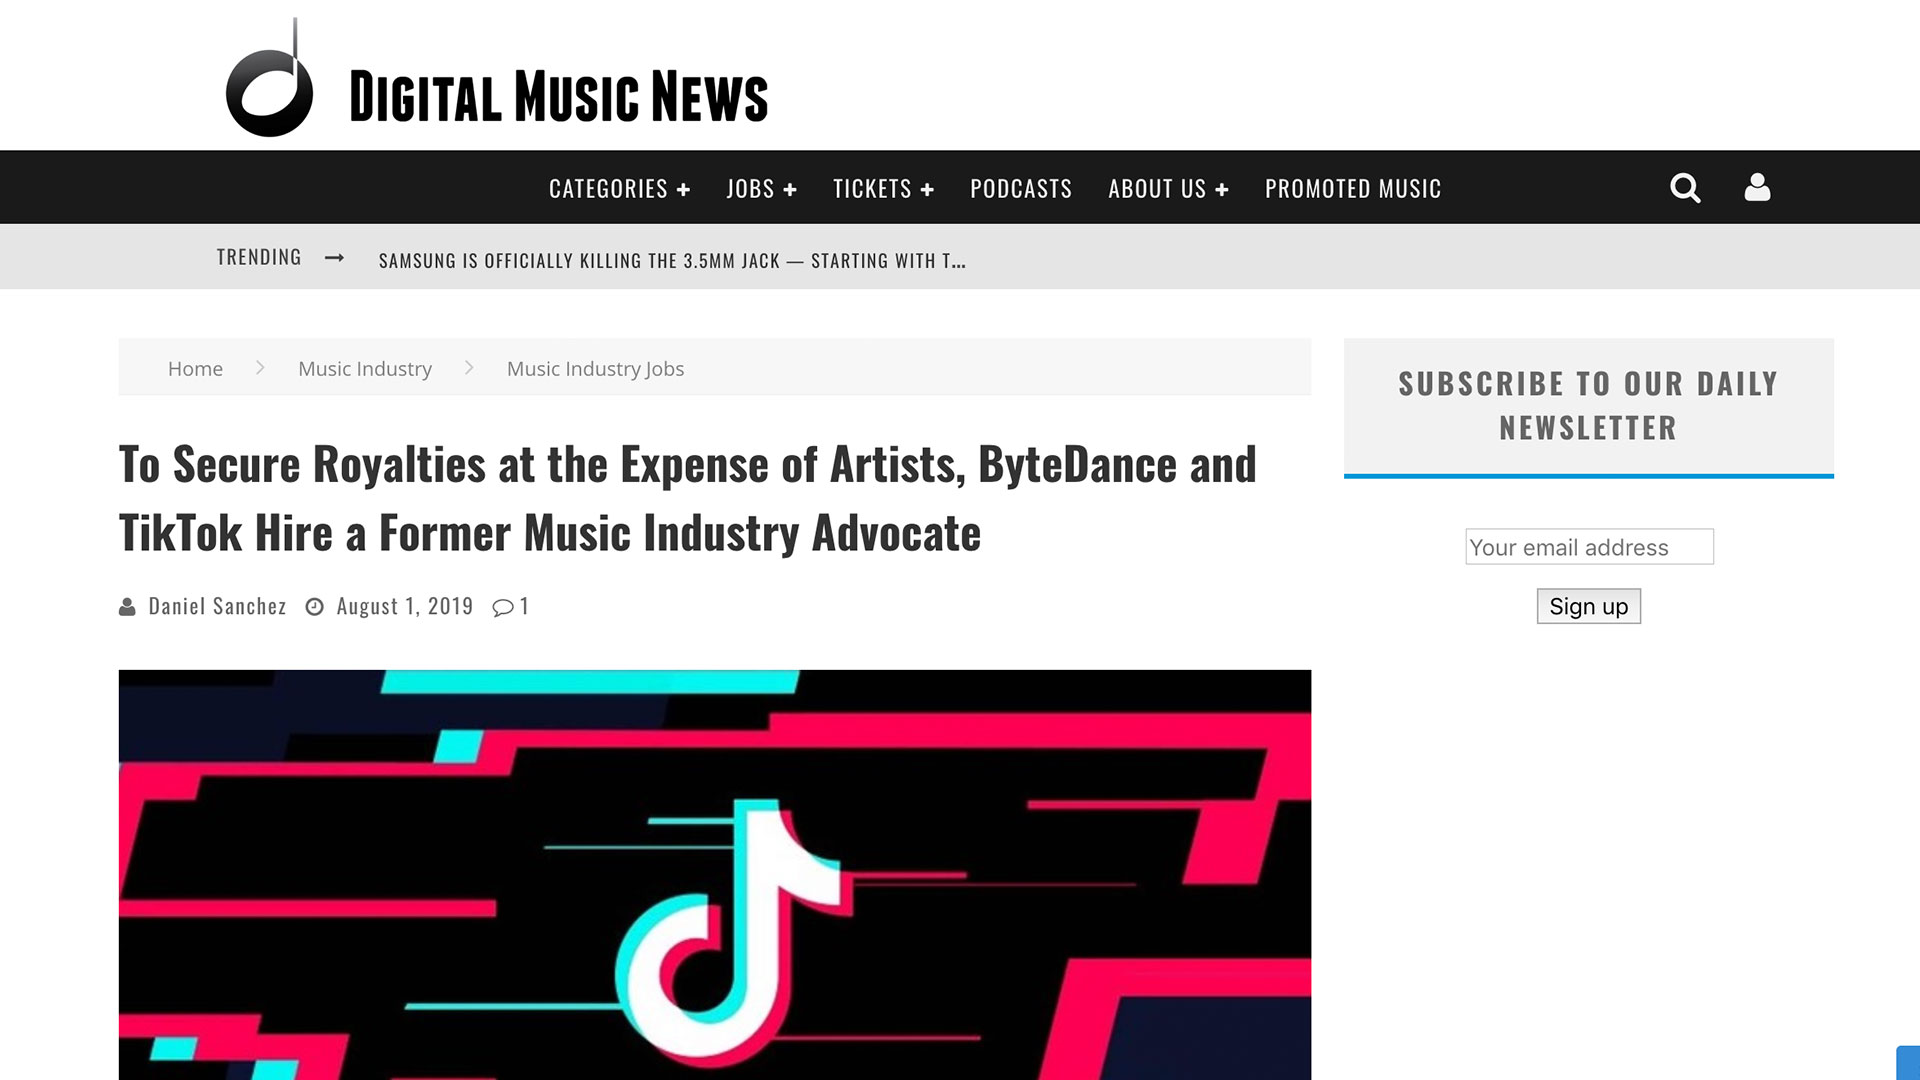 Fairness Rocks News To Secure Royalties at the Expense of Artists, ByteDance and TikTok Hire a Former Music Industry Advocate